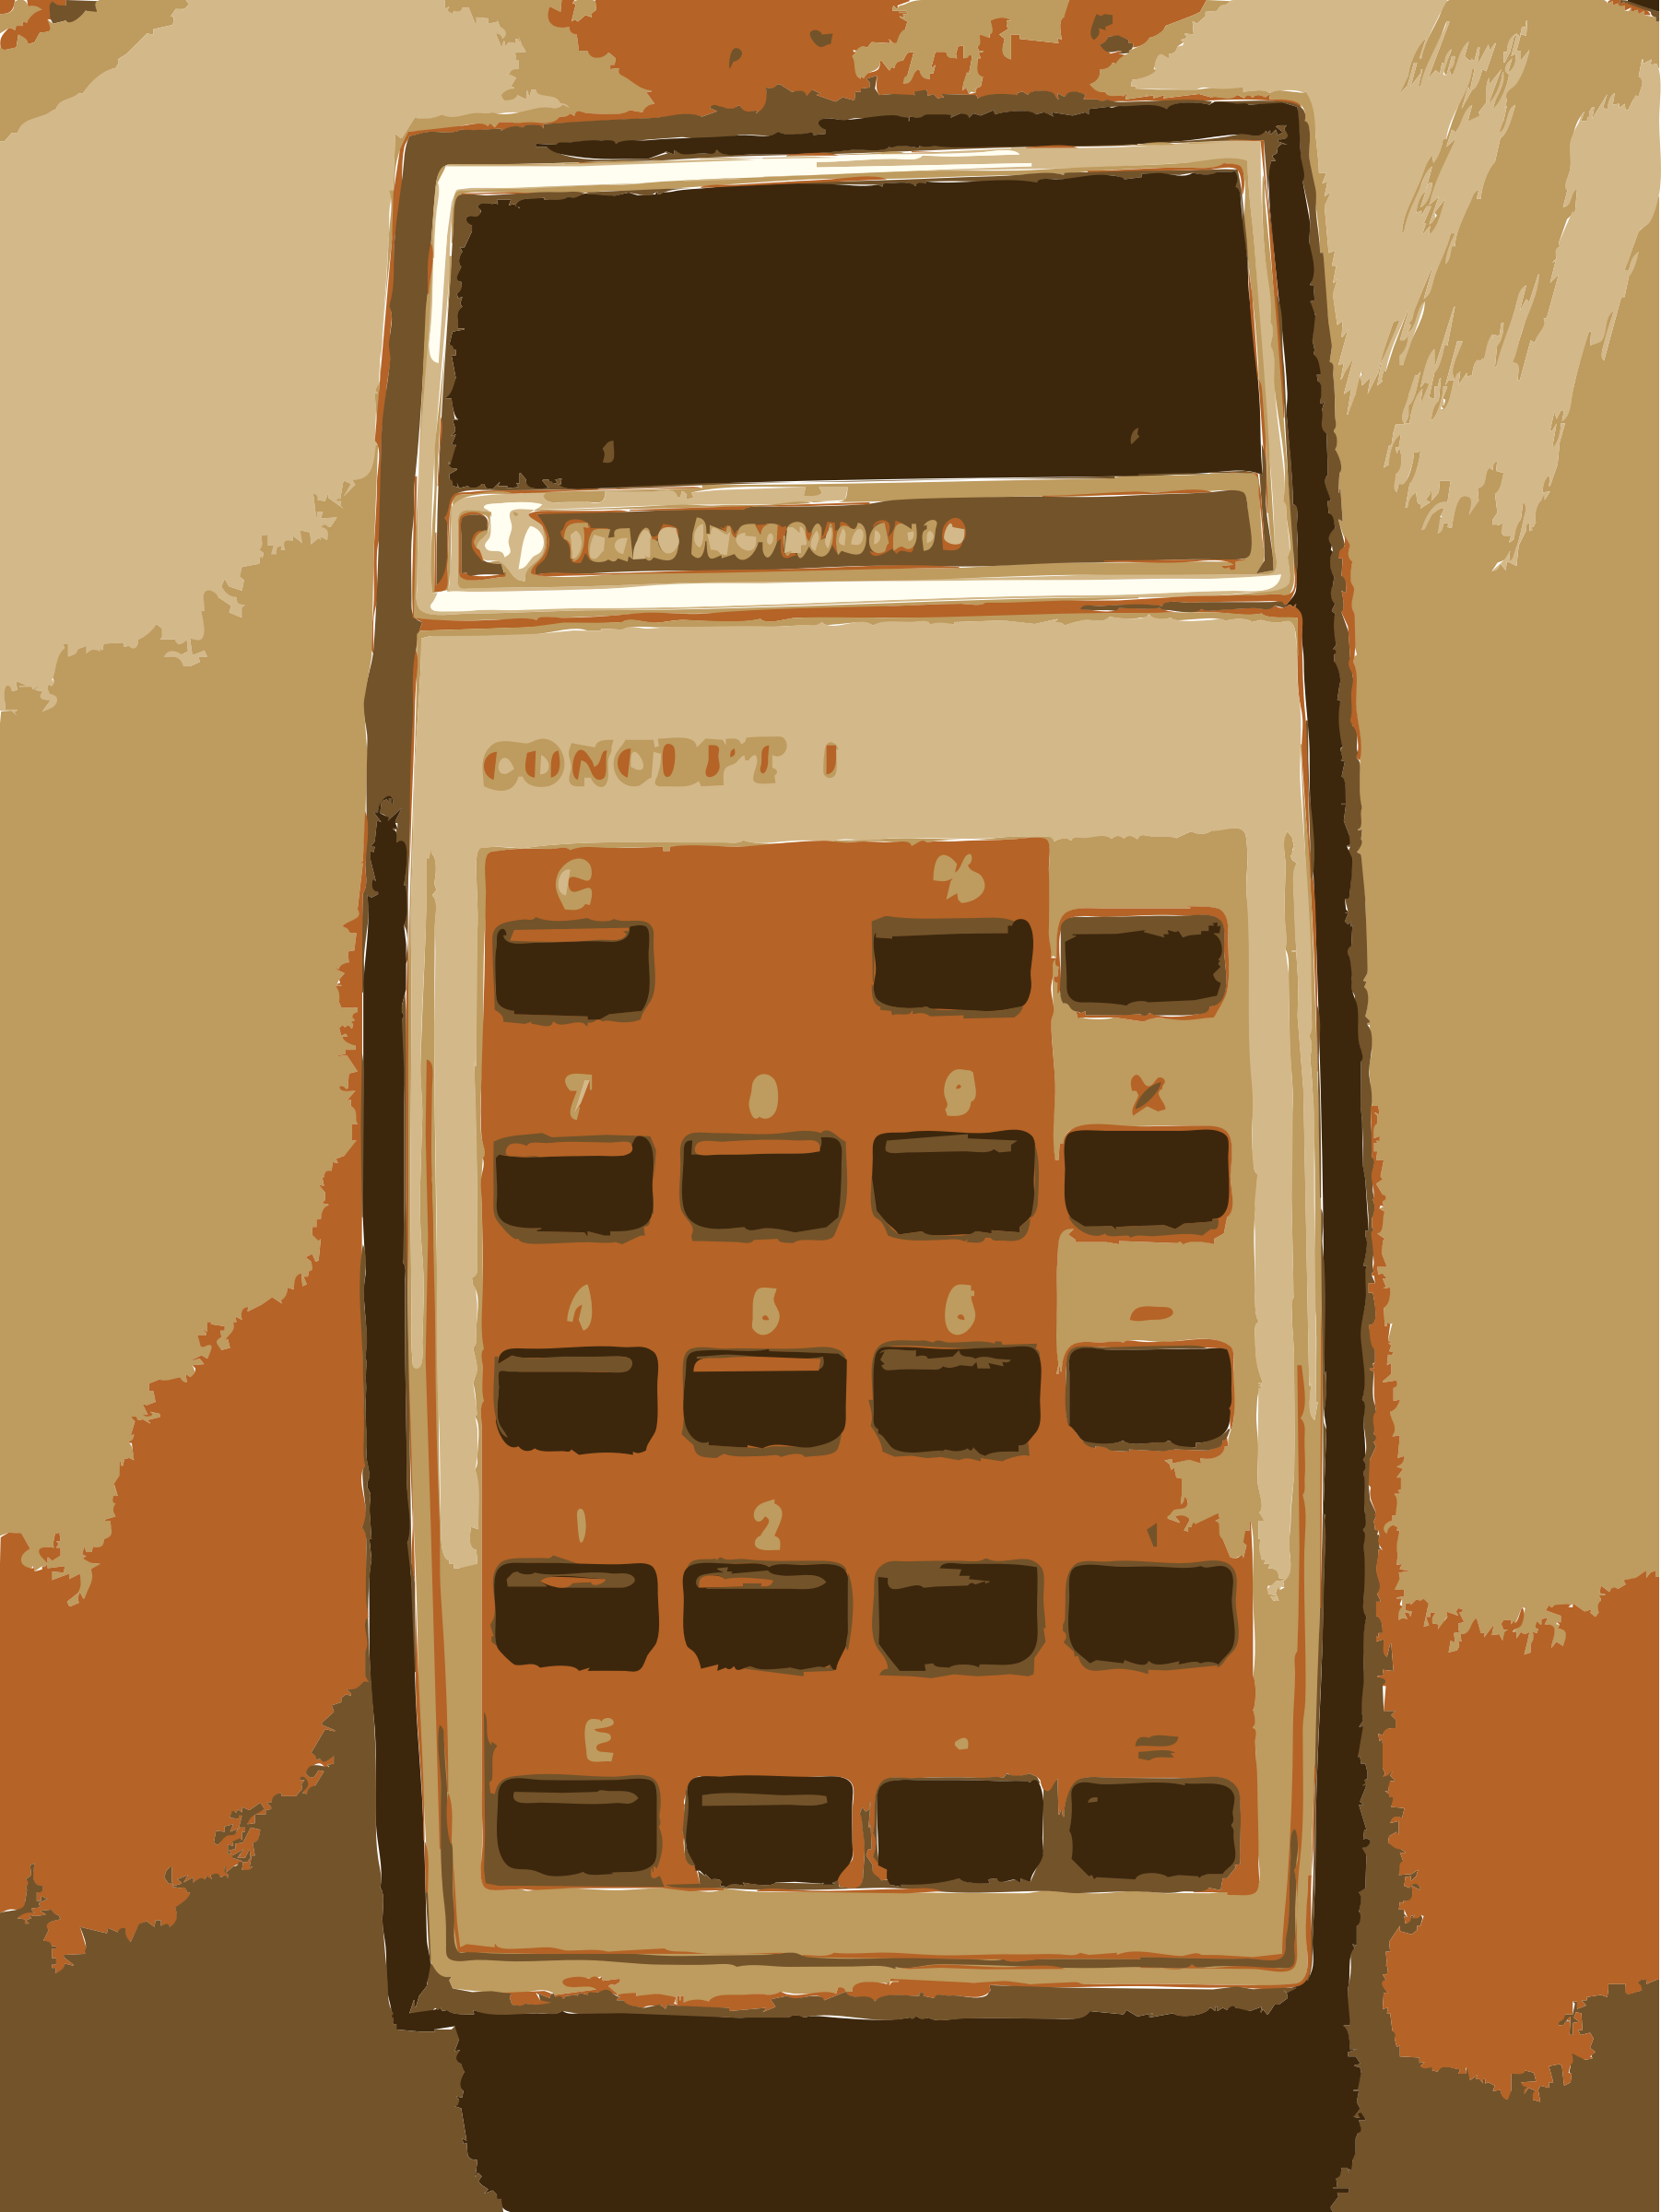 Grandma old TI Calculator by rejon